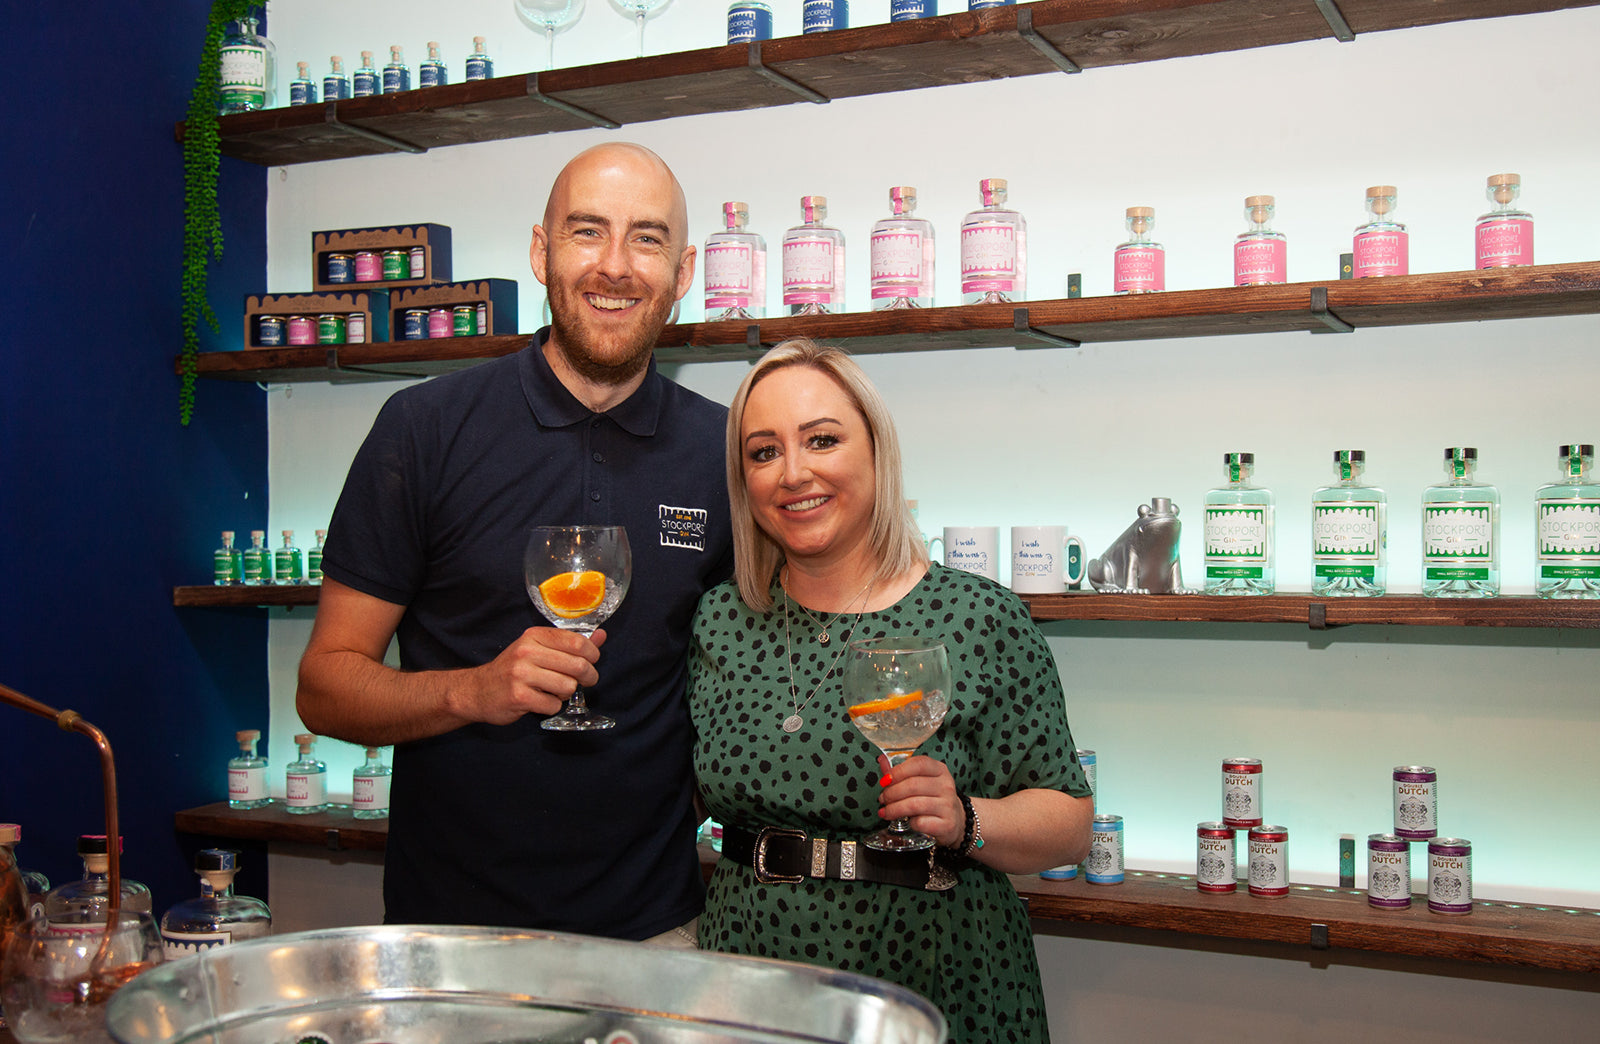 Stockport Gin Paul and Cheryl